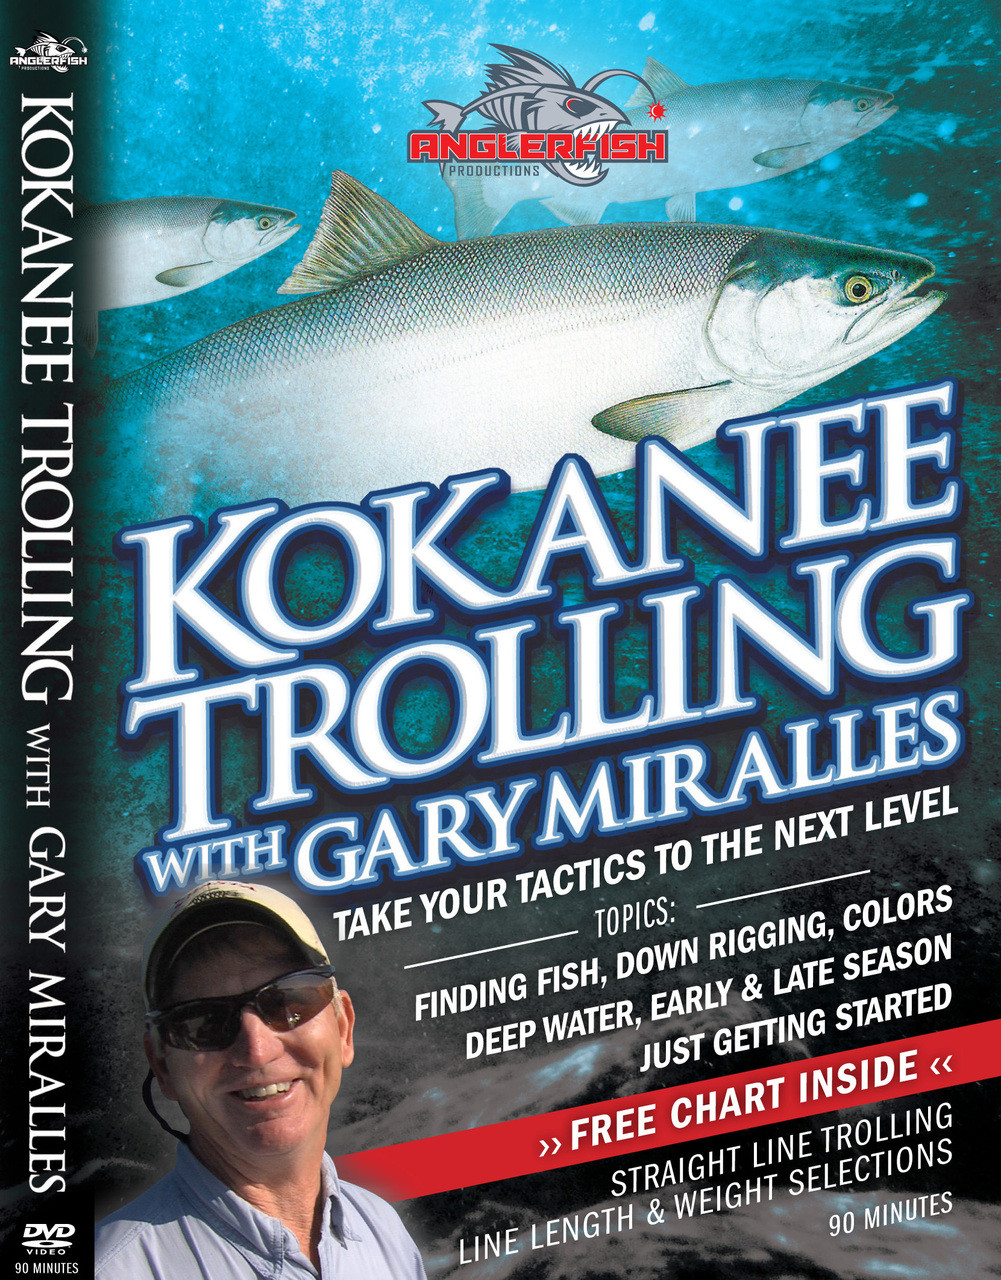 Kokanee Trolling with Gary Miralles - Take Your Tactics to the Next Level